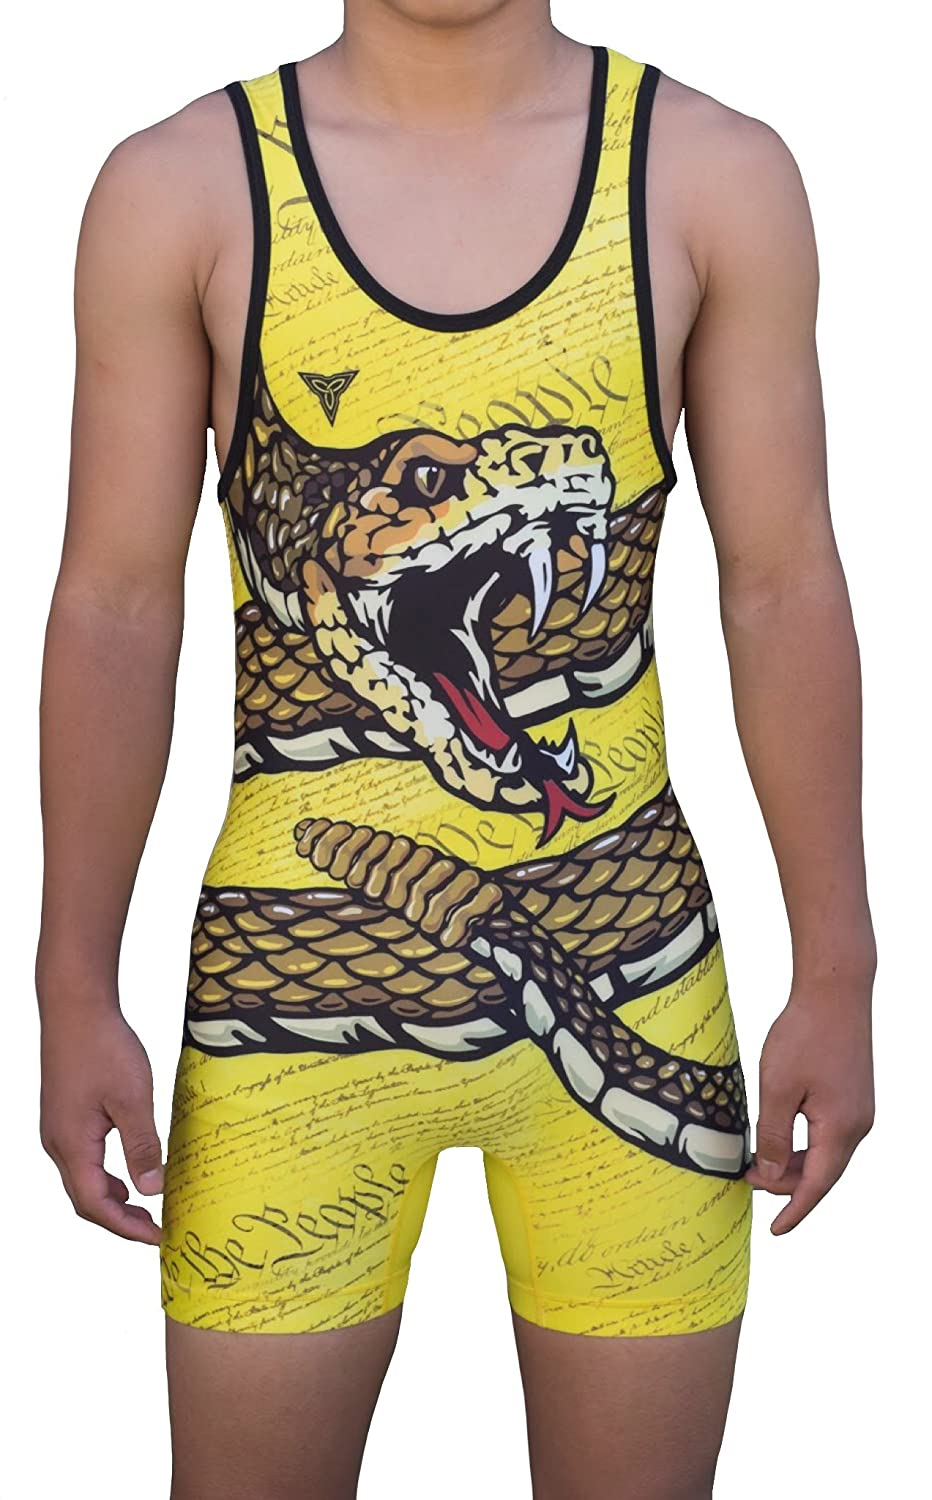 79075652eee26 TRI-TITANS Don't Tread On Me! Folkstyle Wrestling Singlet Youths and Adult  Mens